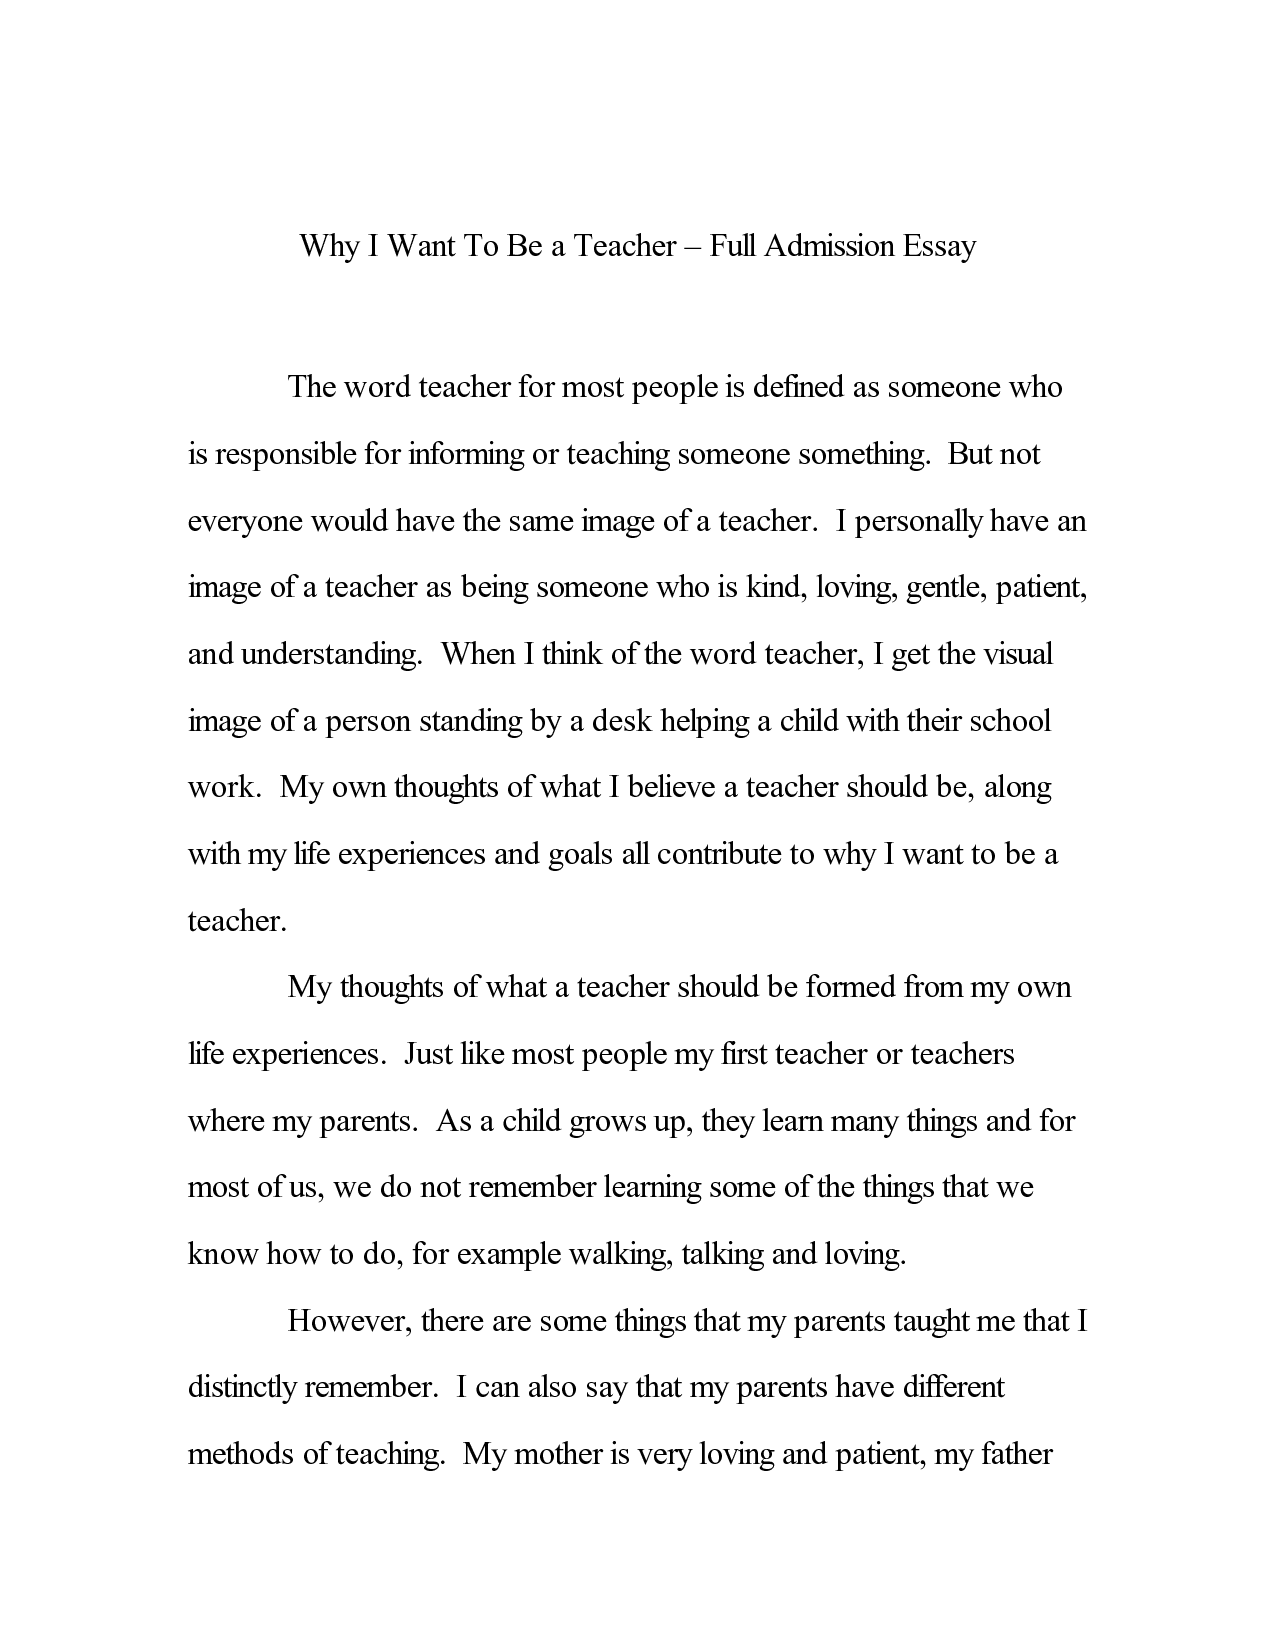 004 How To Write College Entrance Essay Striking A Good Introduction For Application Admissions Successful Full